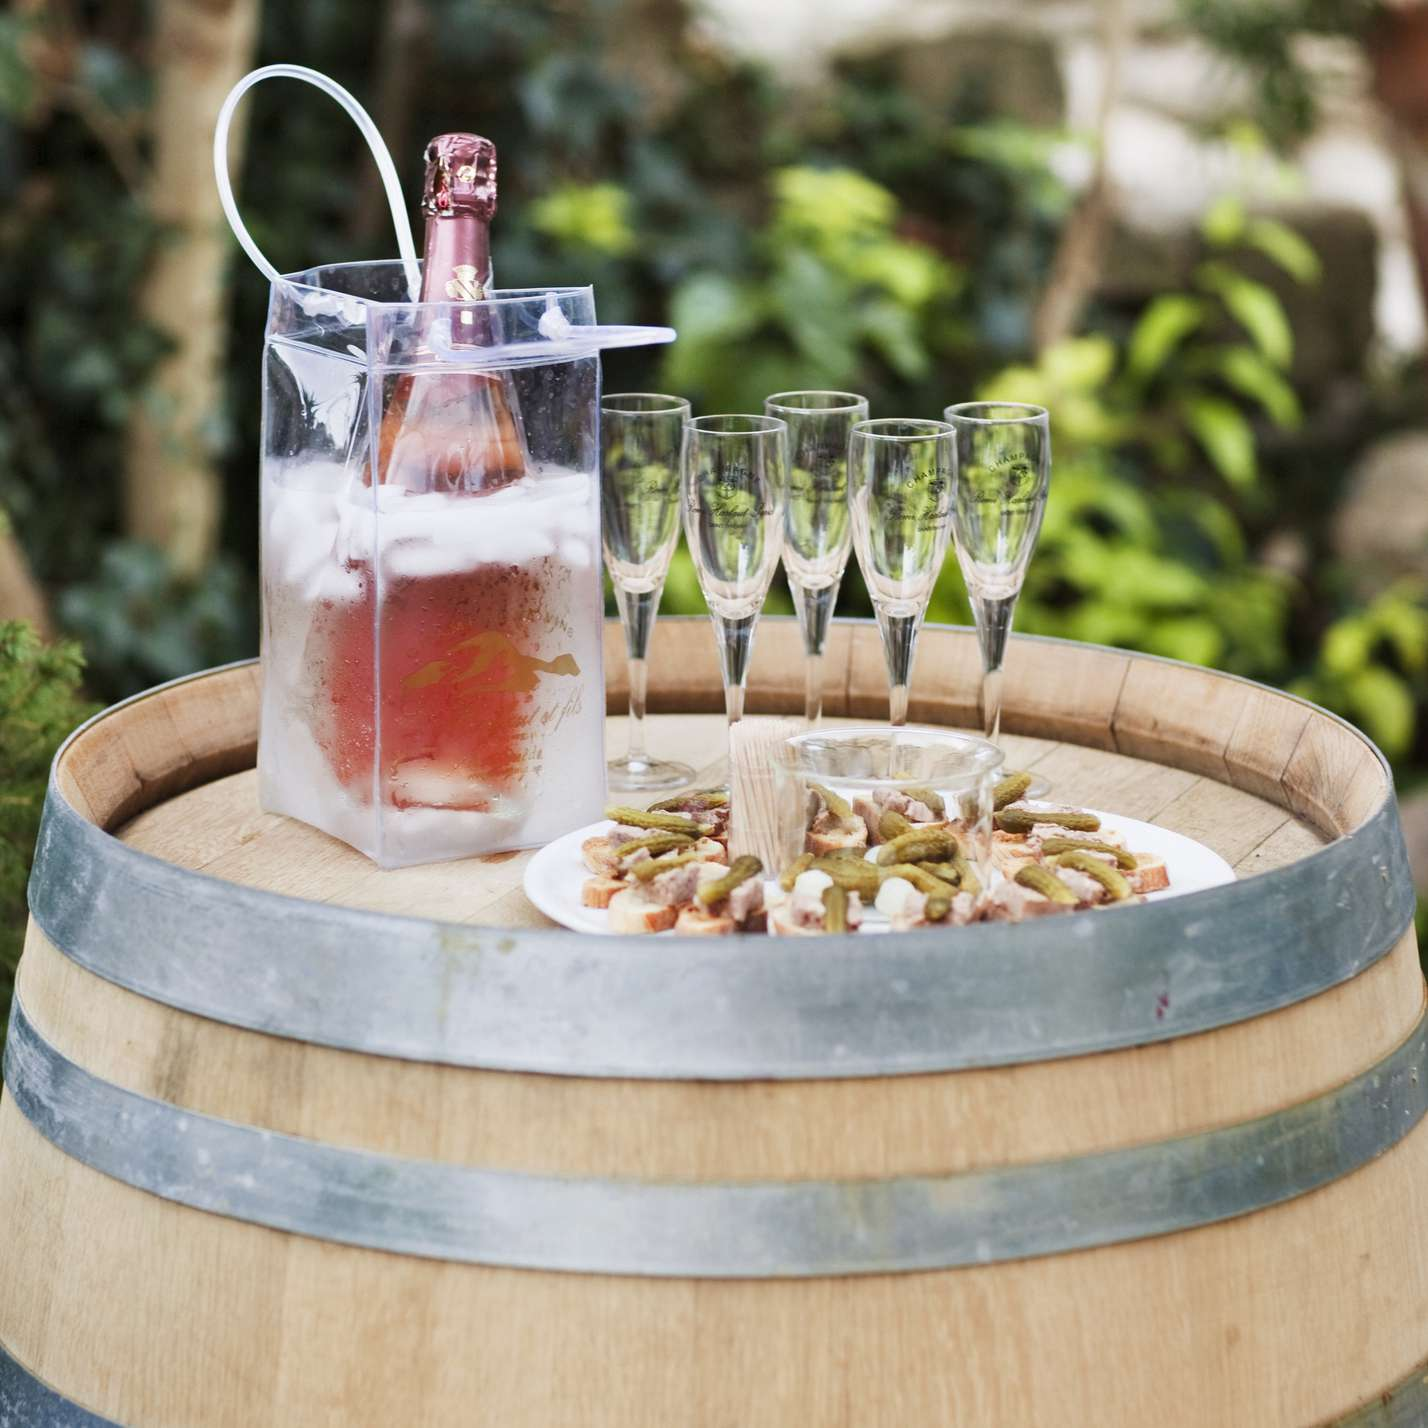 Barrell with sparking rosé wine in an ice bucket, champagne flutes, and finger food